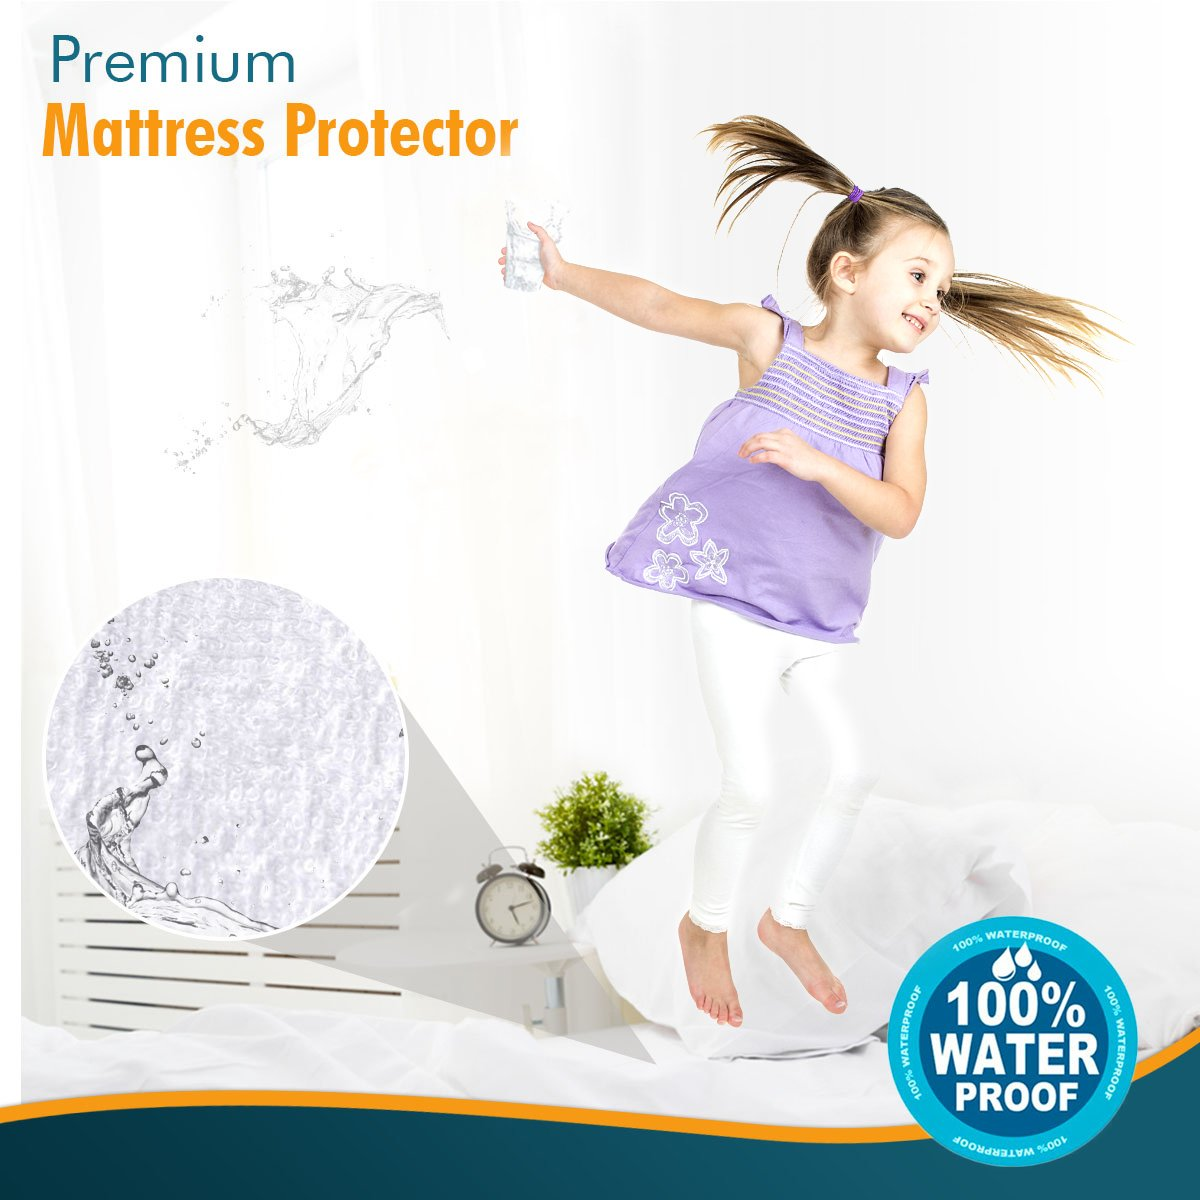 Breathable Soft Cotton Terry Surface Vinyl Free 10 Year Warranty from PlushDeluxe Twin Premium 100/% Waterproof Mattress Protector Hypoallergenic